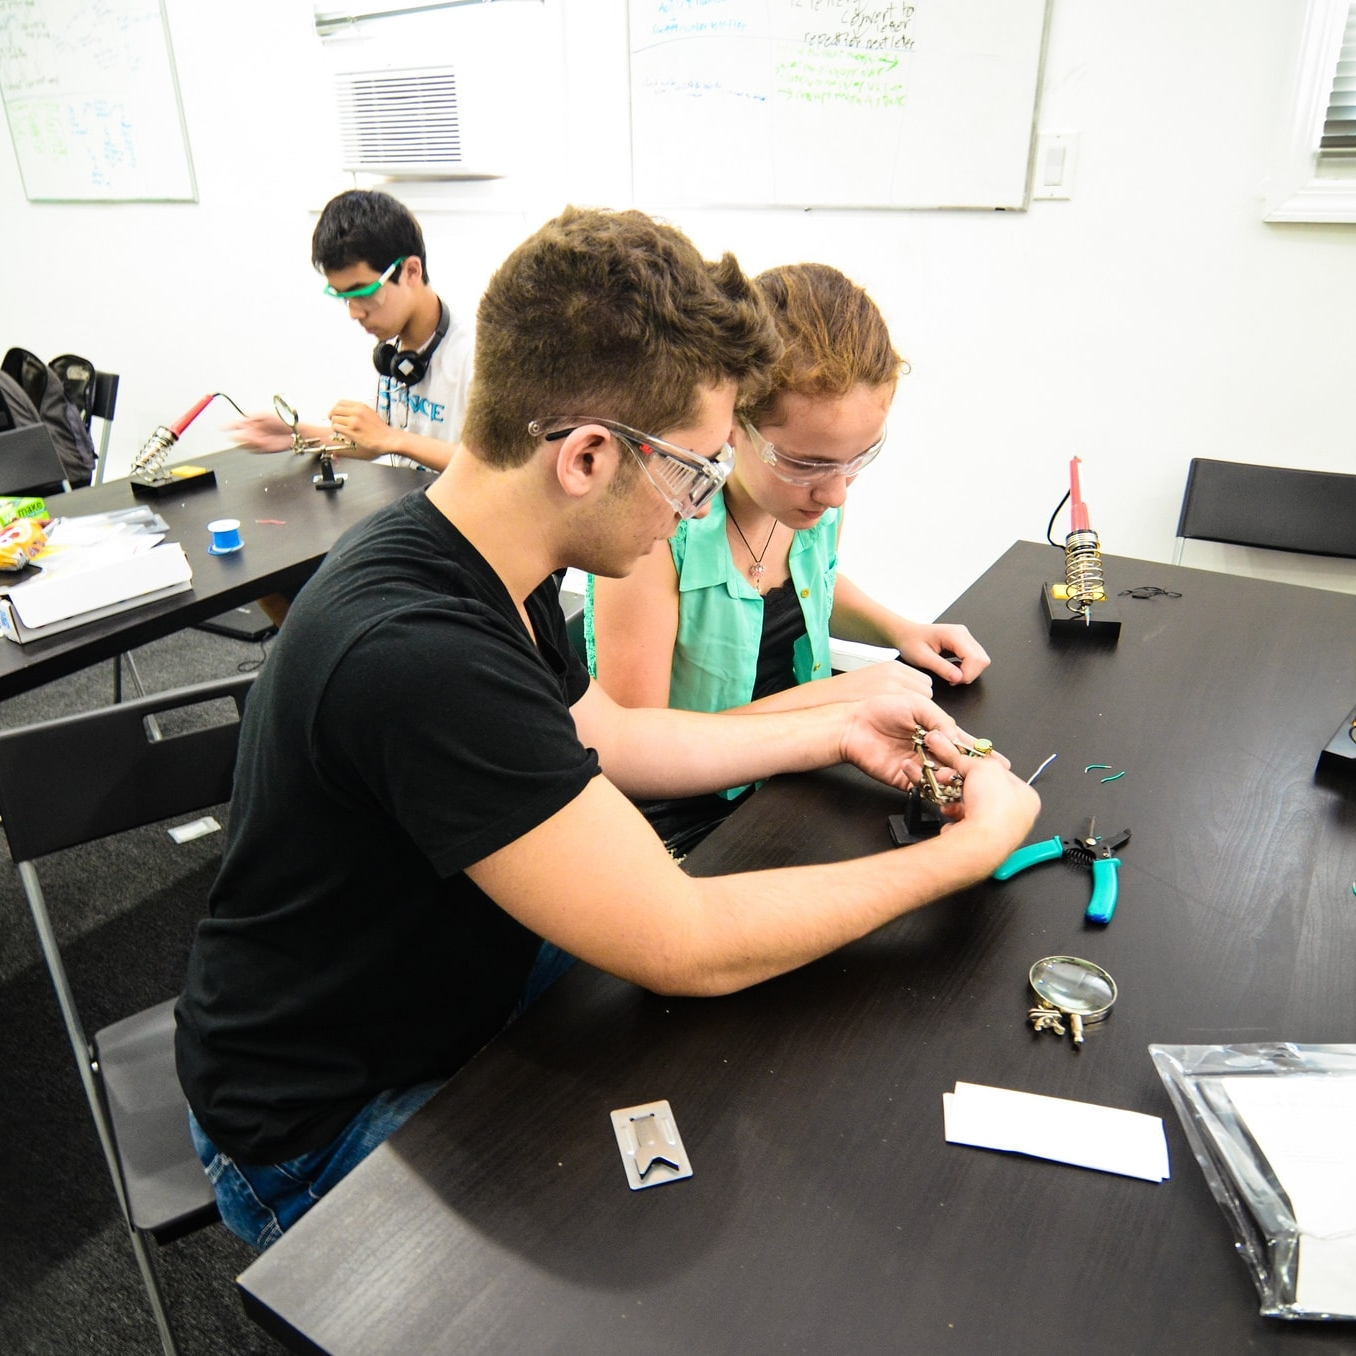 Learn From the Best - Our mentors are teens. Come to Kinet-X and code with Ivy League students. Build robots with world robotics champions. Launch startups with advice from successful teen founders. At Kinet-X, you'll be learning, building, and working with other brilliant young minds.